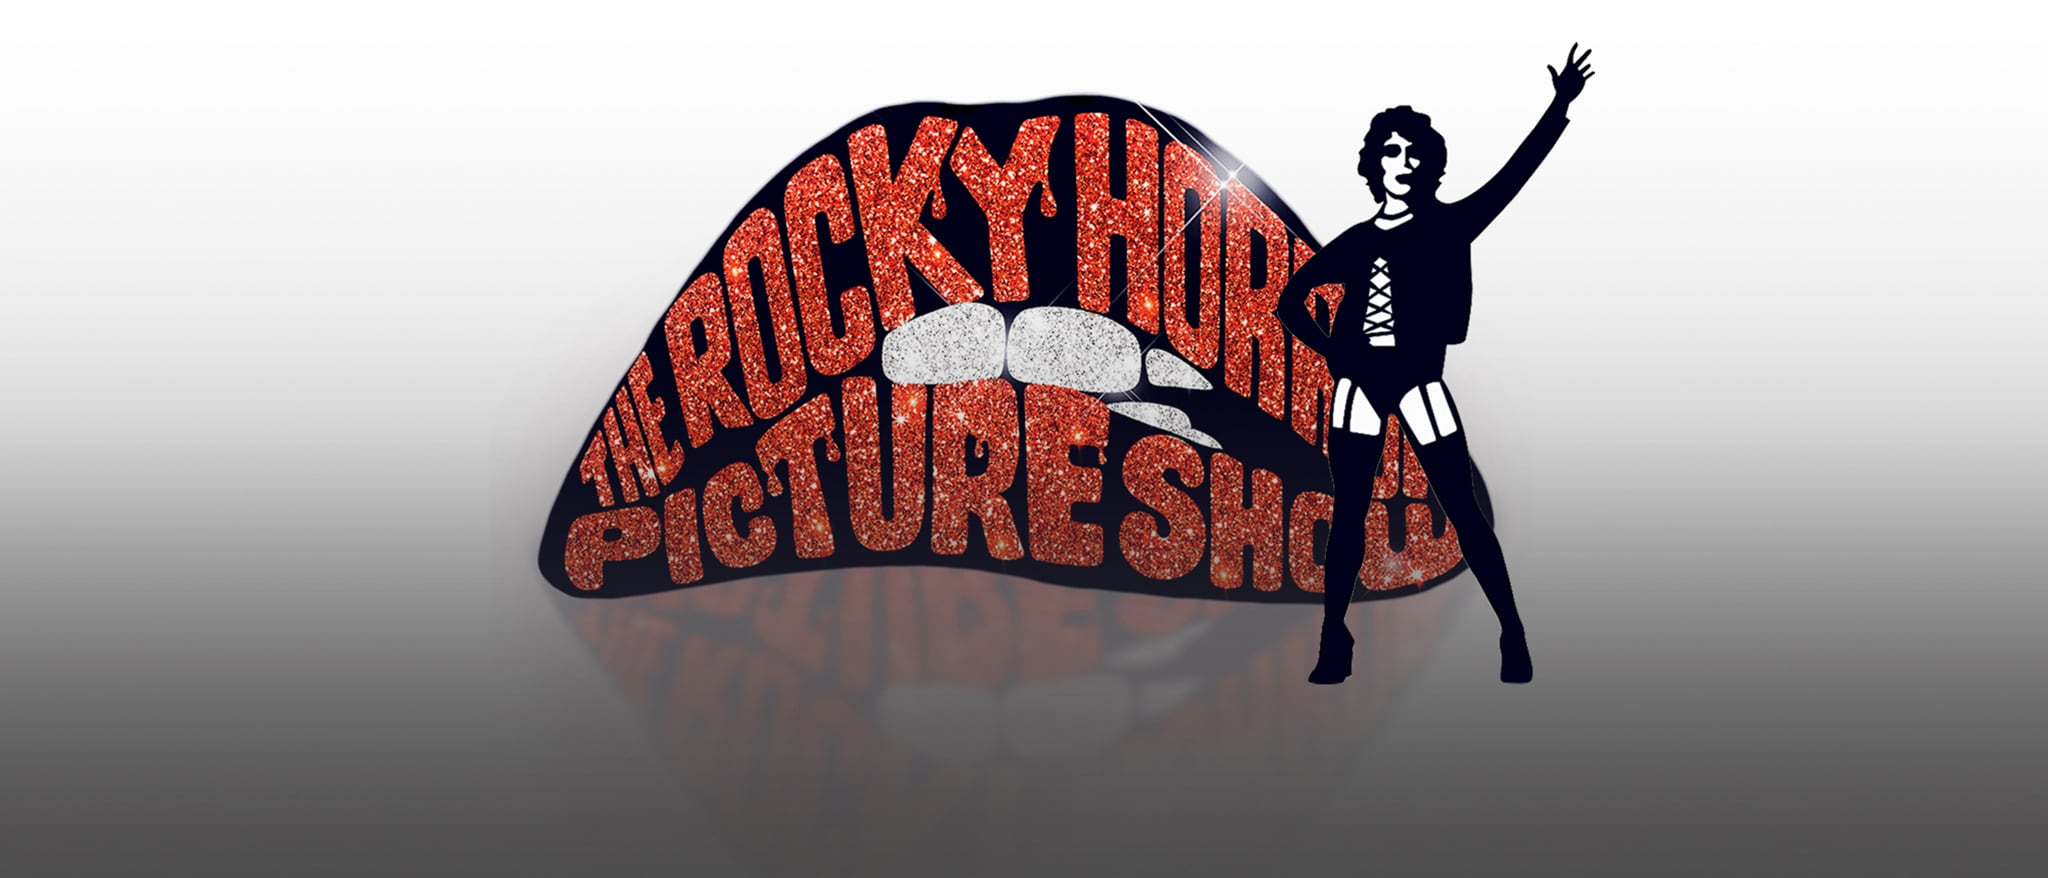 Homepage Hero - The Rocky Horror Picture Show (45th Anniversary) Hero